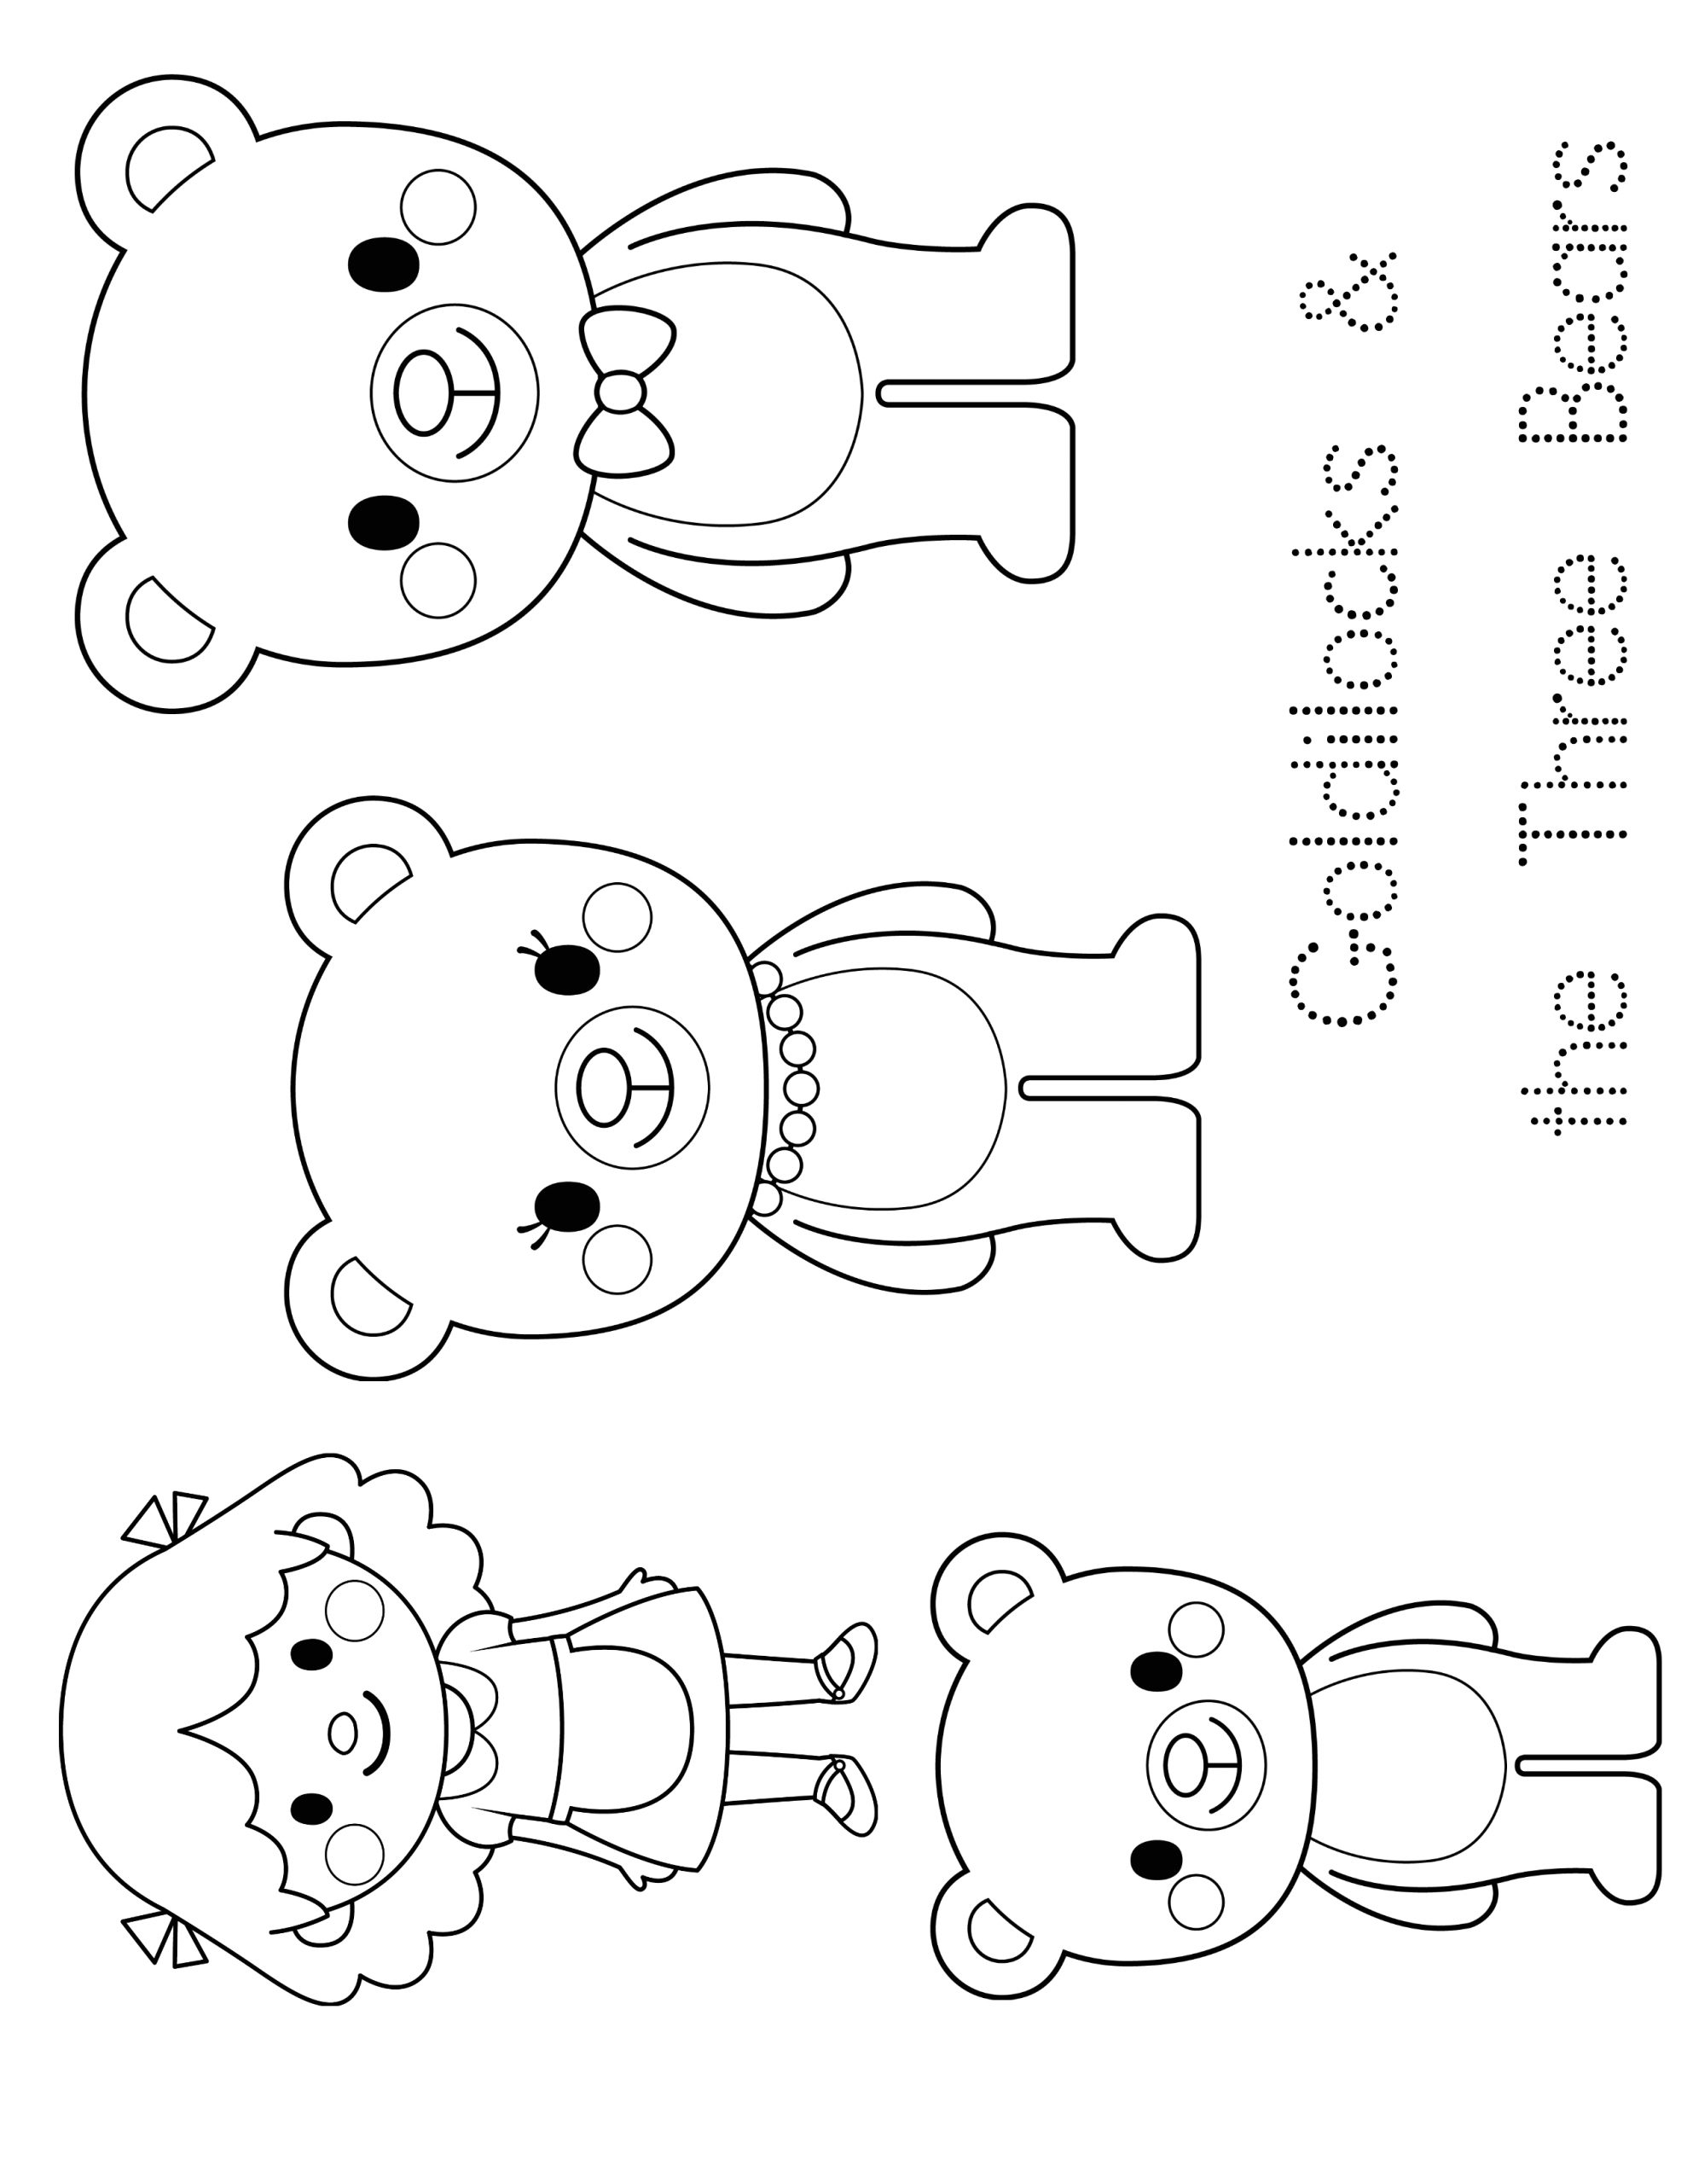 Goldilocks and the Three Bears Coloring Pages Preschool Goldilocks and the Three Bears Coloring Pages Free at